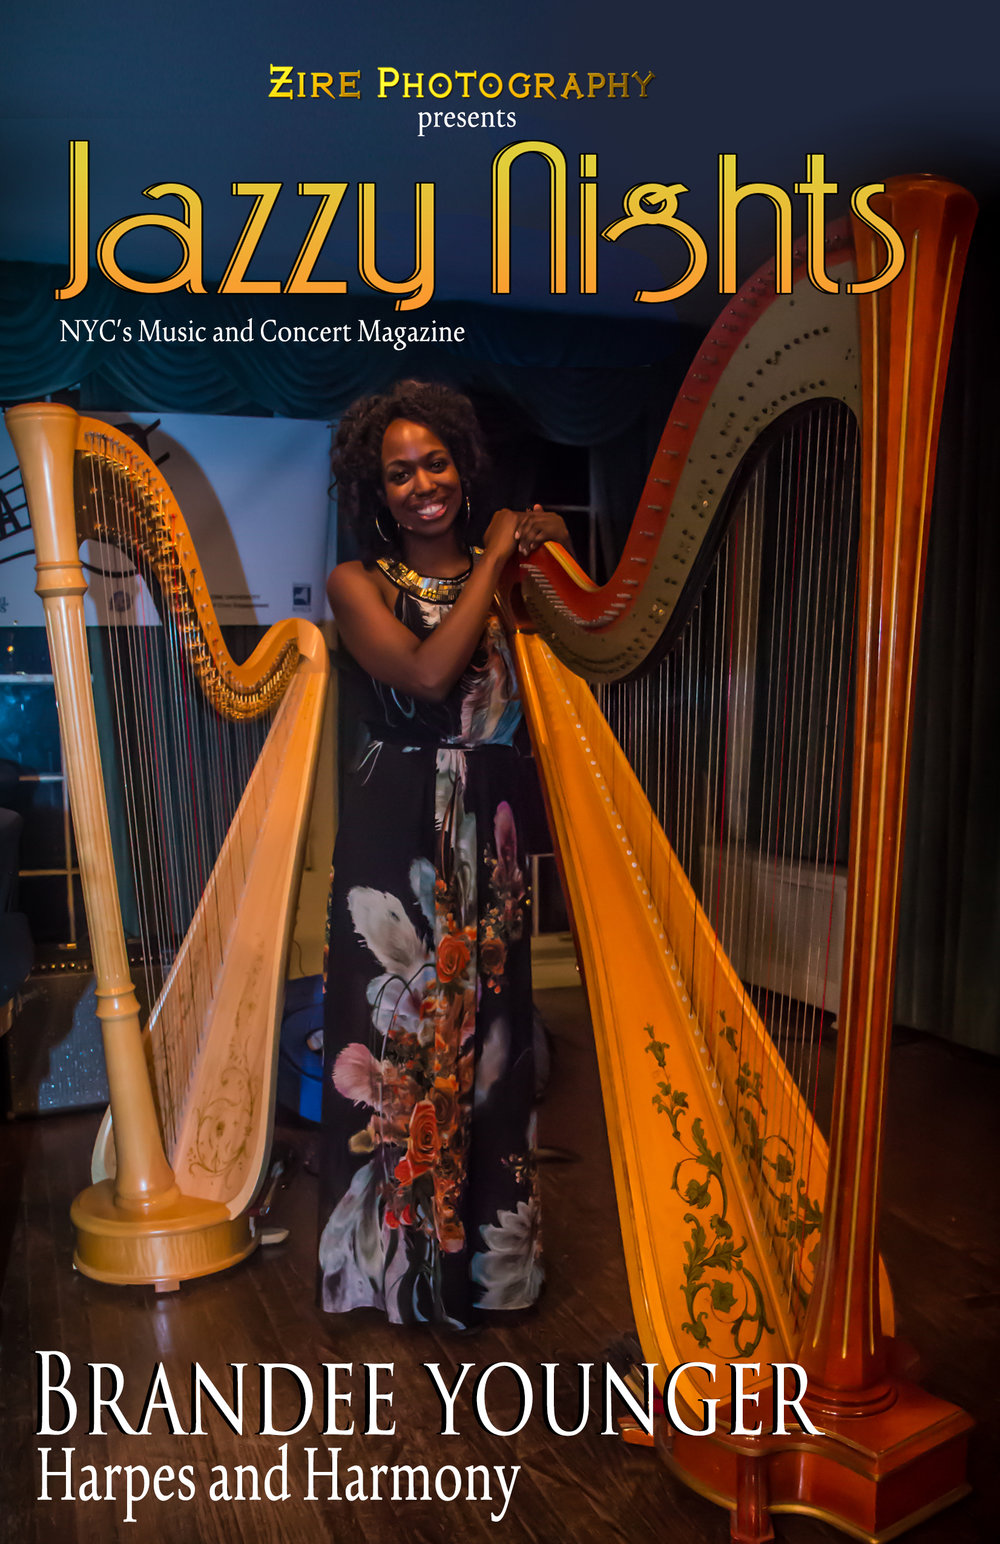 Harps and Harmony with Brandee Younger